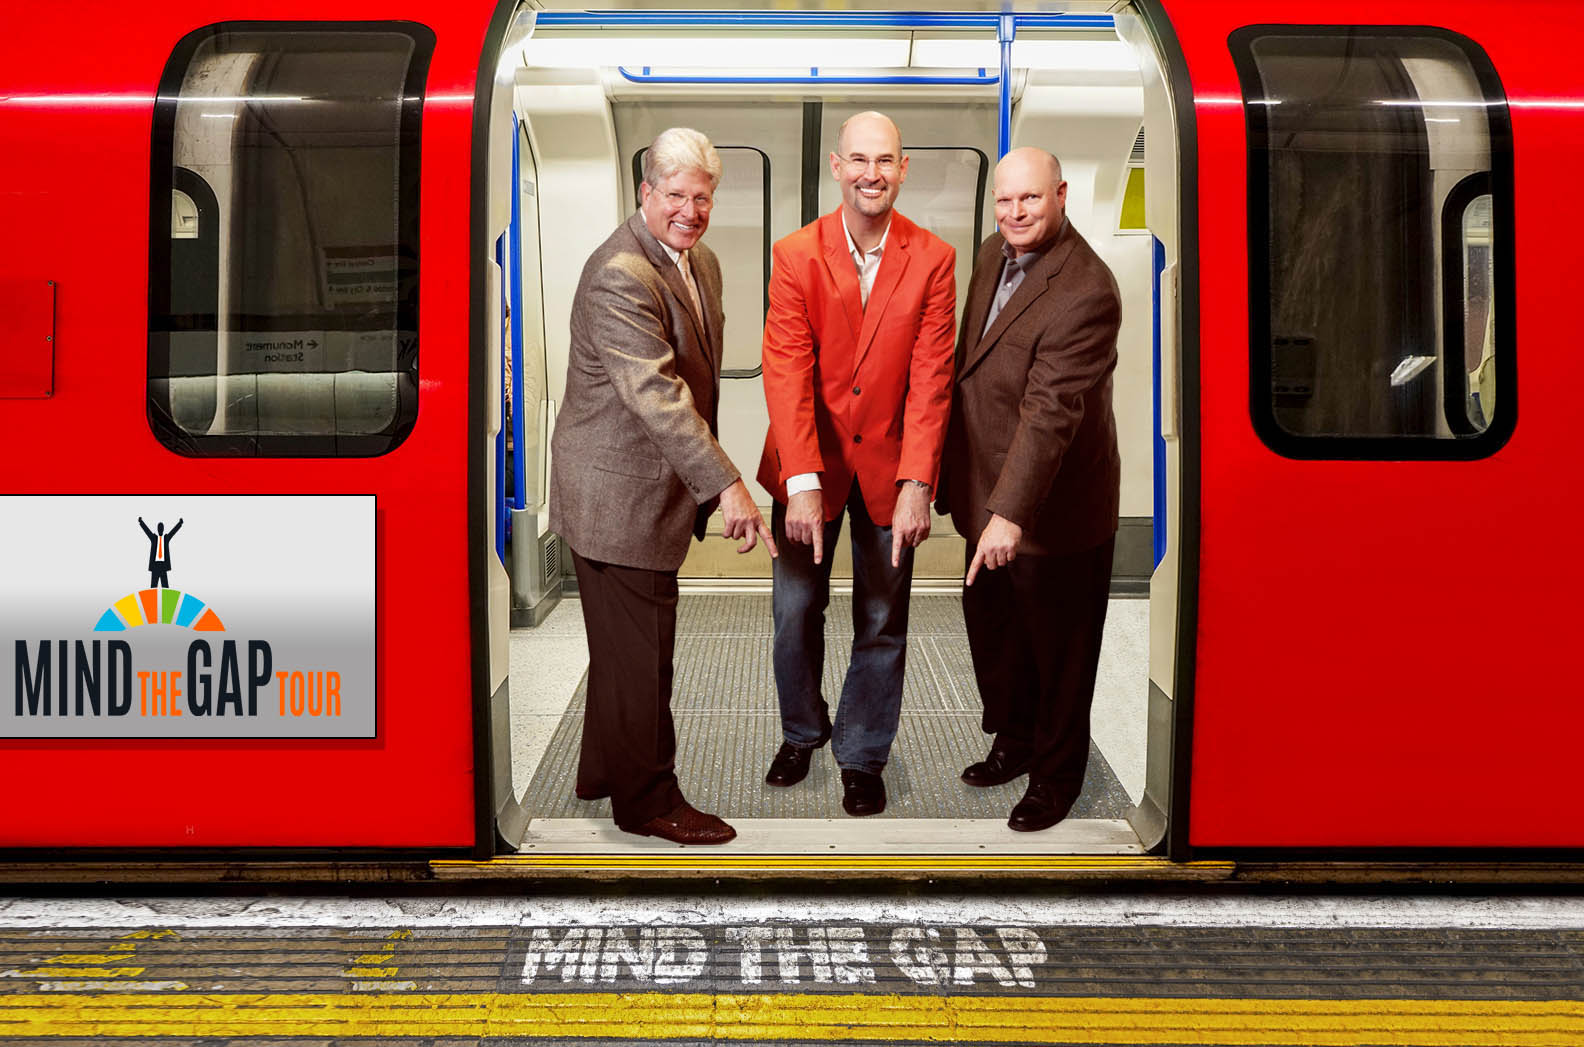 Mind the Gap Tour with Gary, Stan & Tim